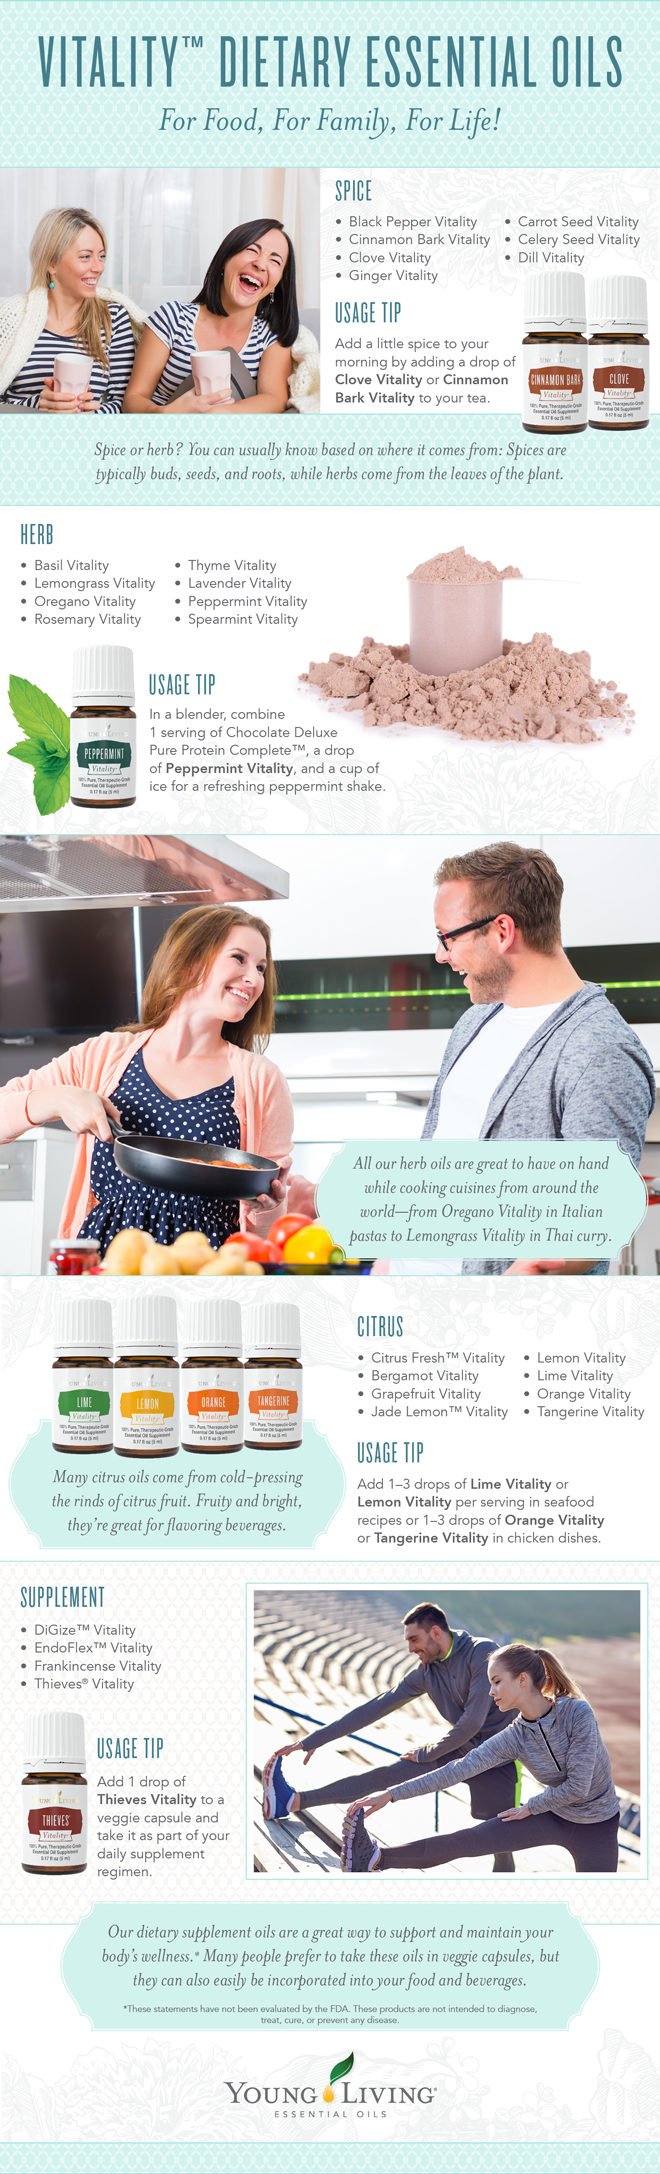 http://static.youngliving.com/info-graphics/en-us/dietary-oils/dietary-oils.png